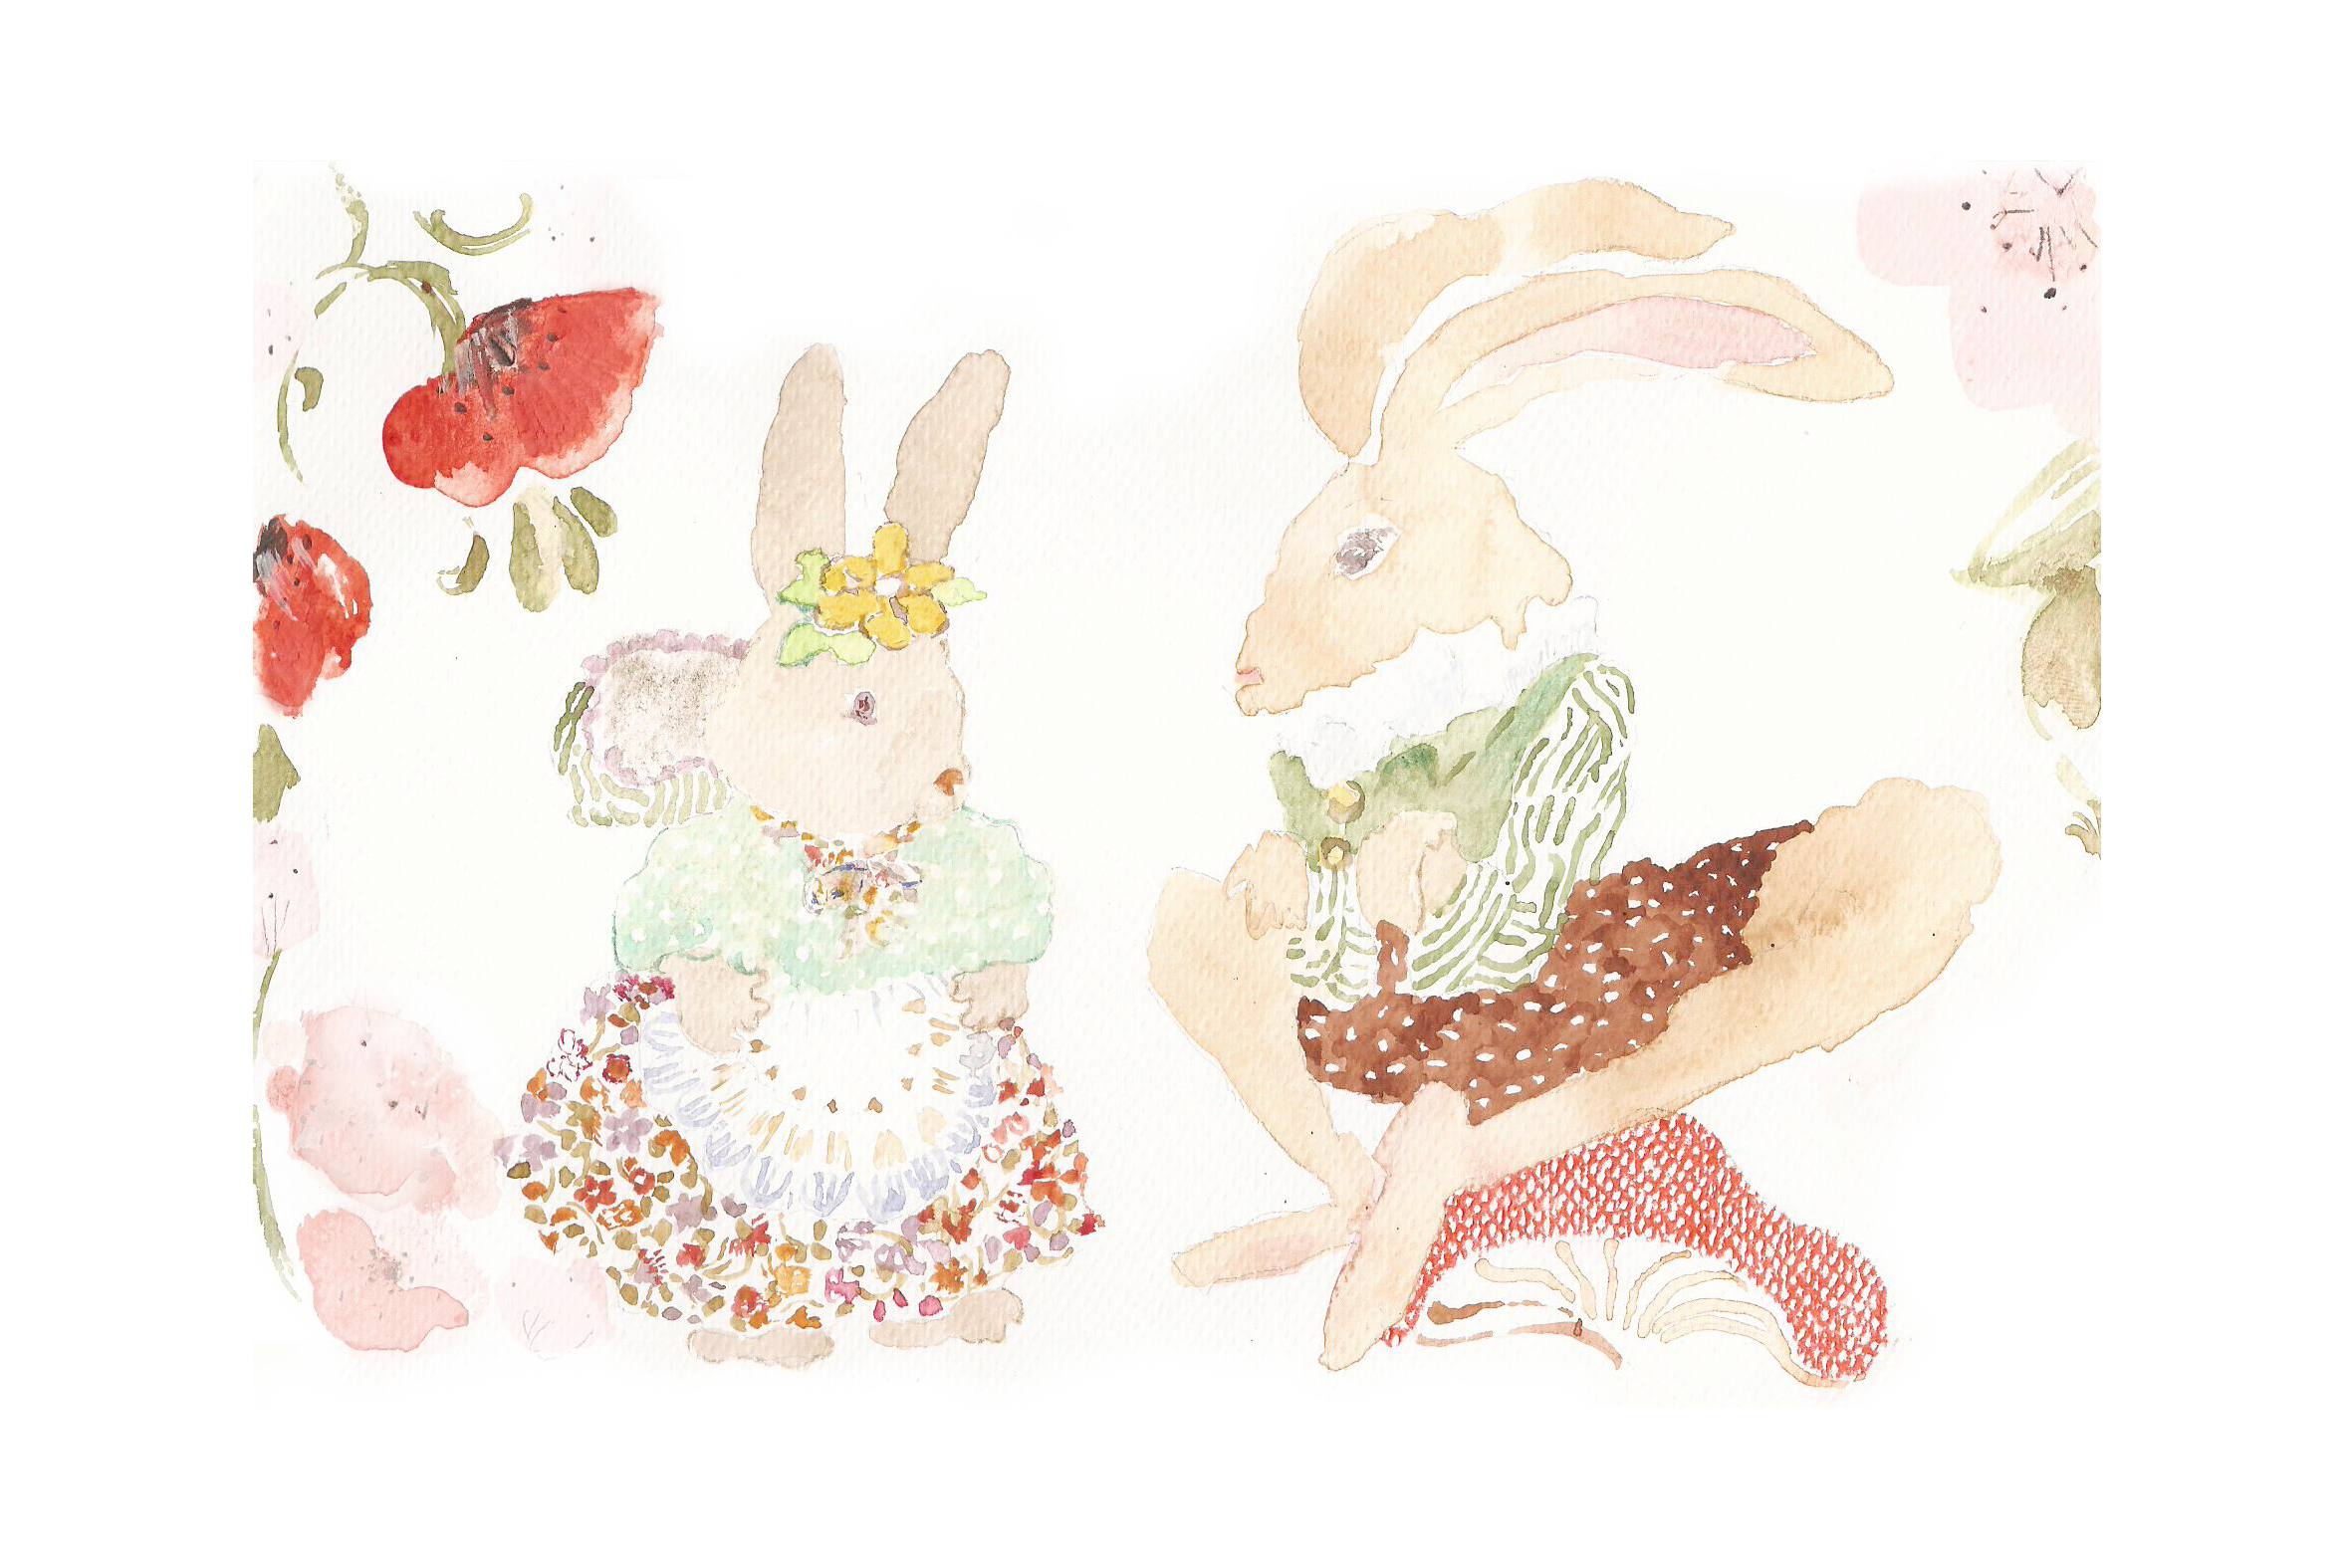 The hare and the rabbit